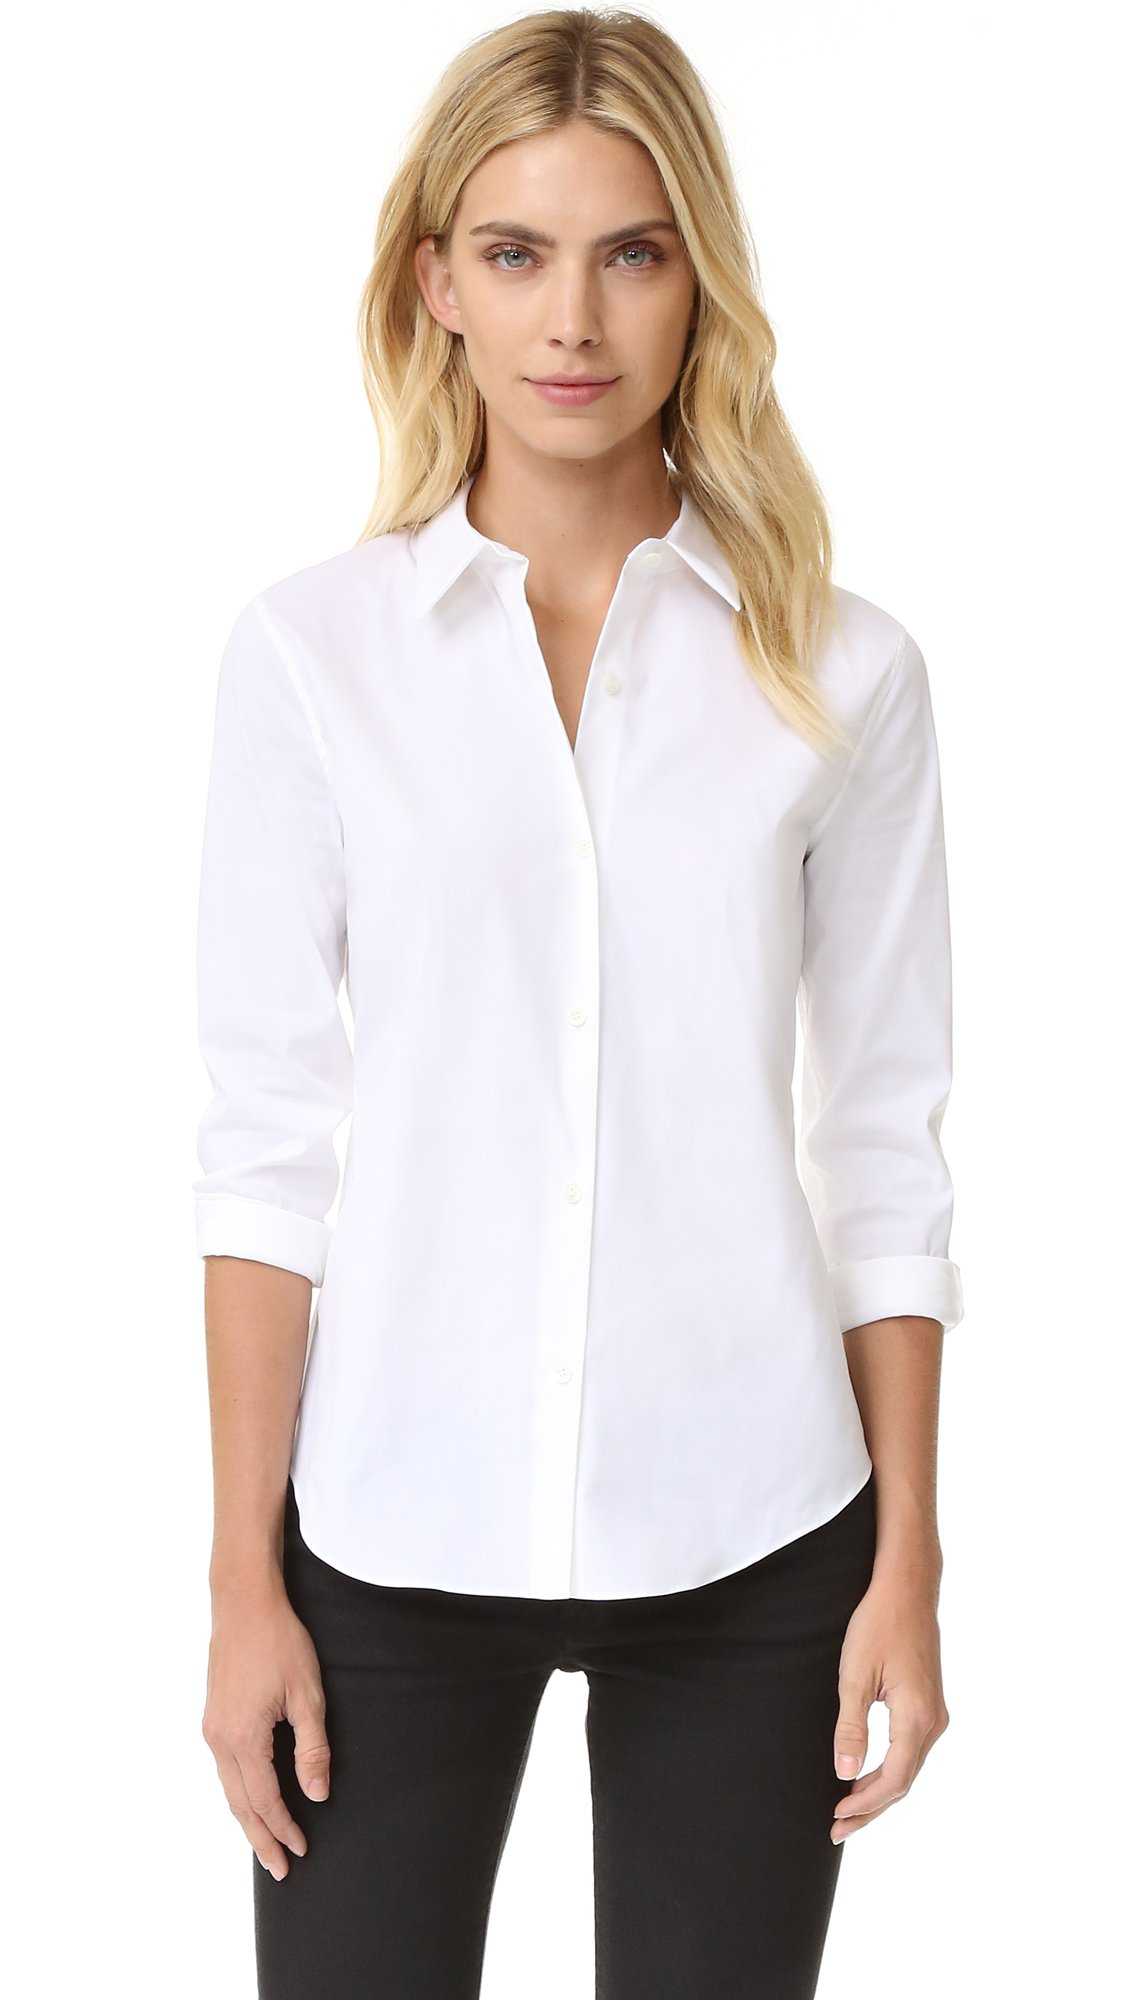 Theory Women's Tenia Luxe Shirt, White, Small by Theory